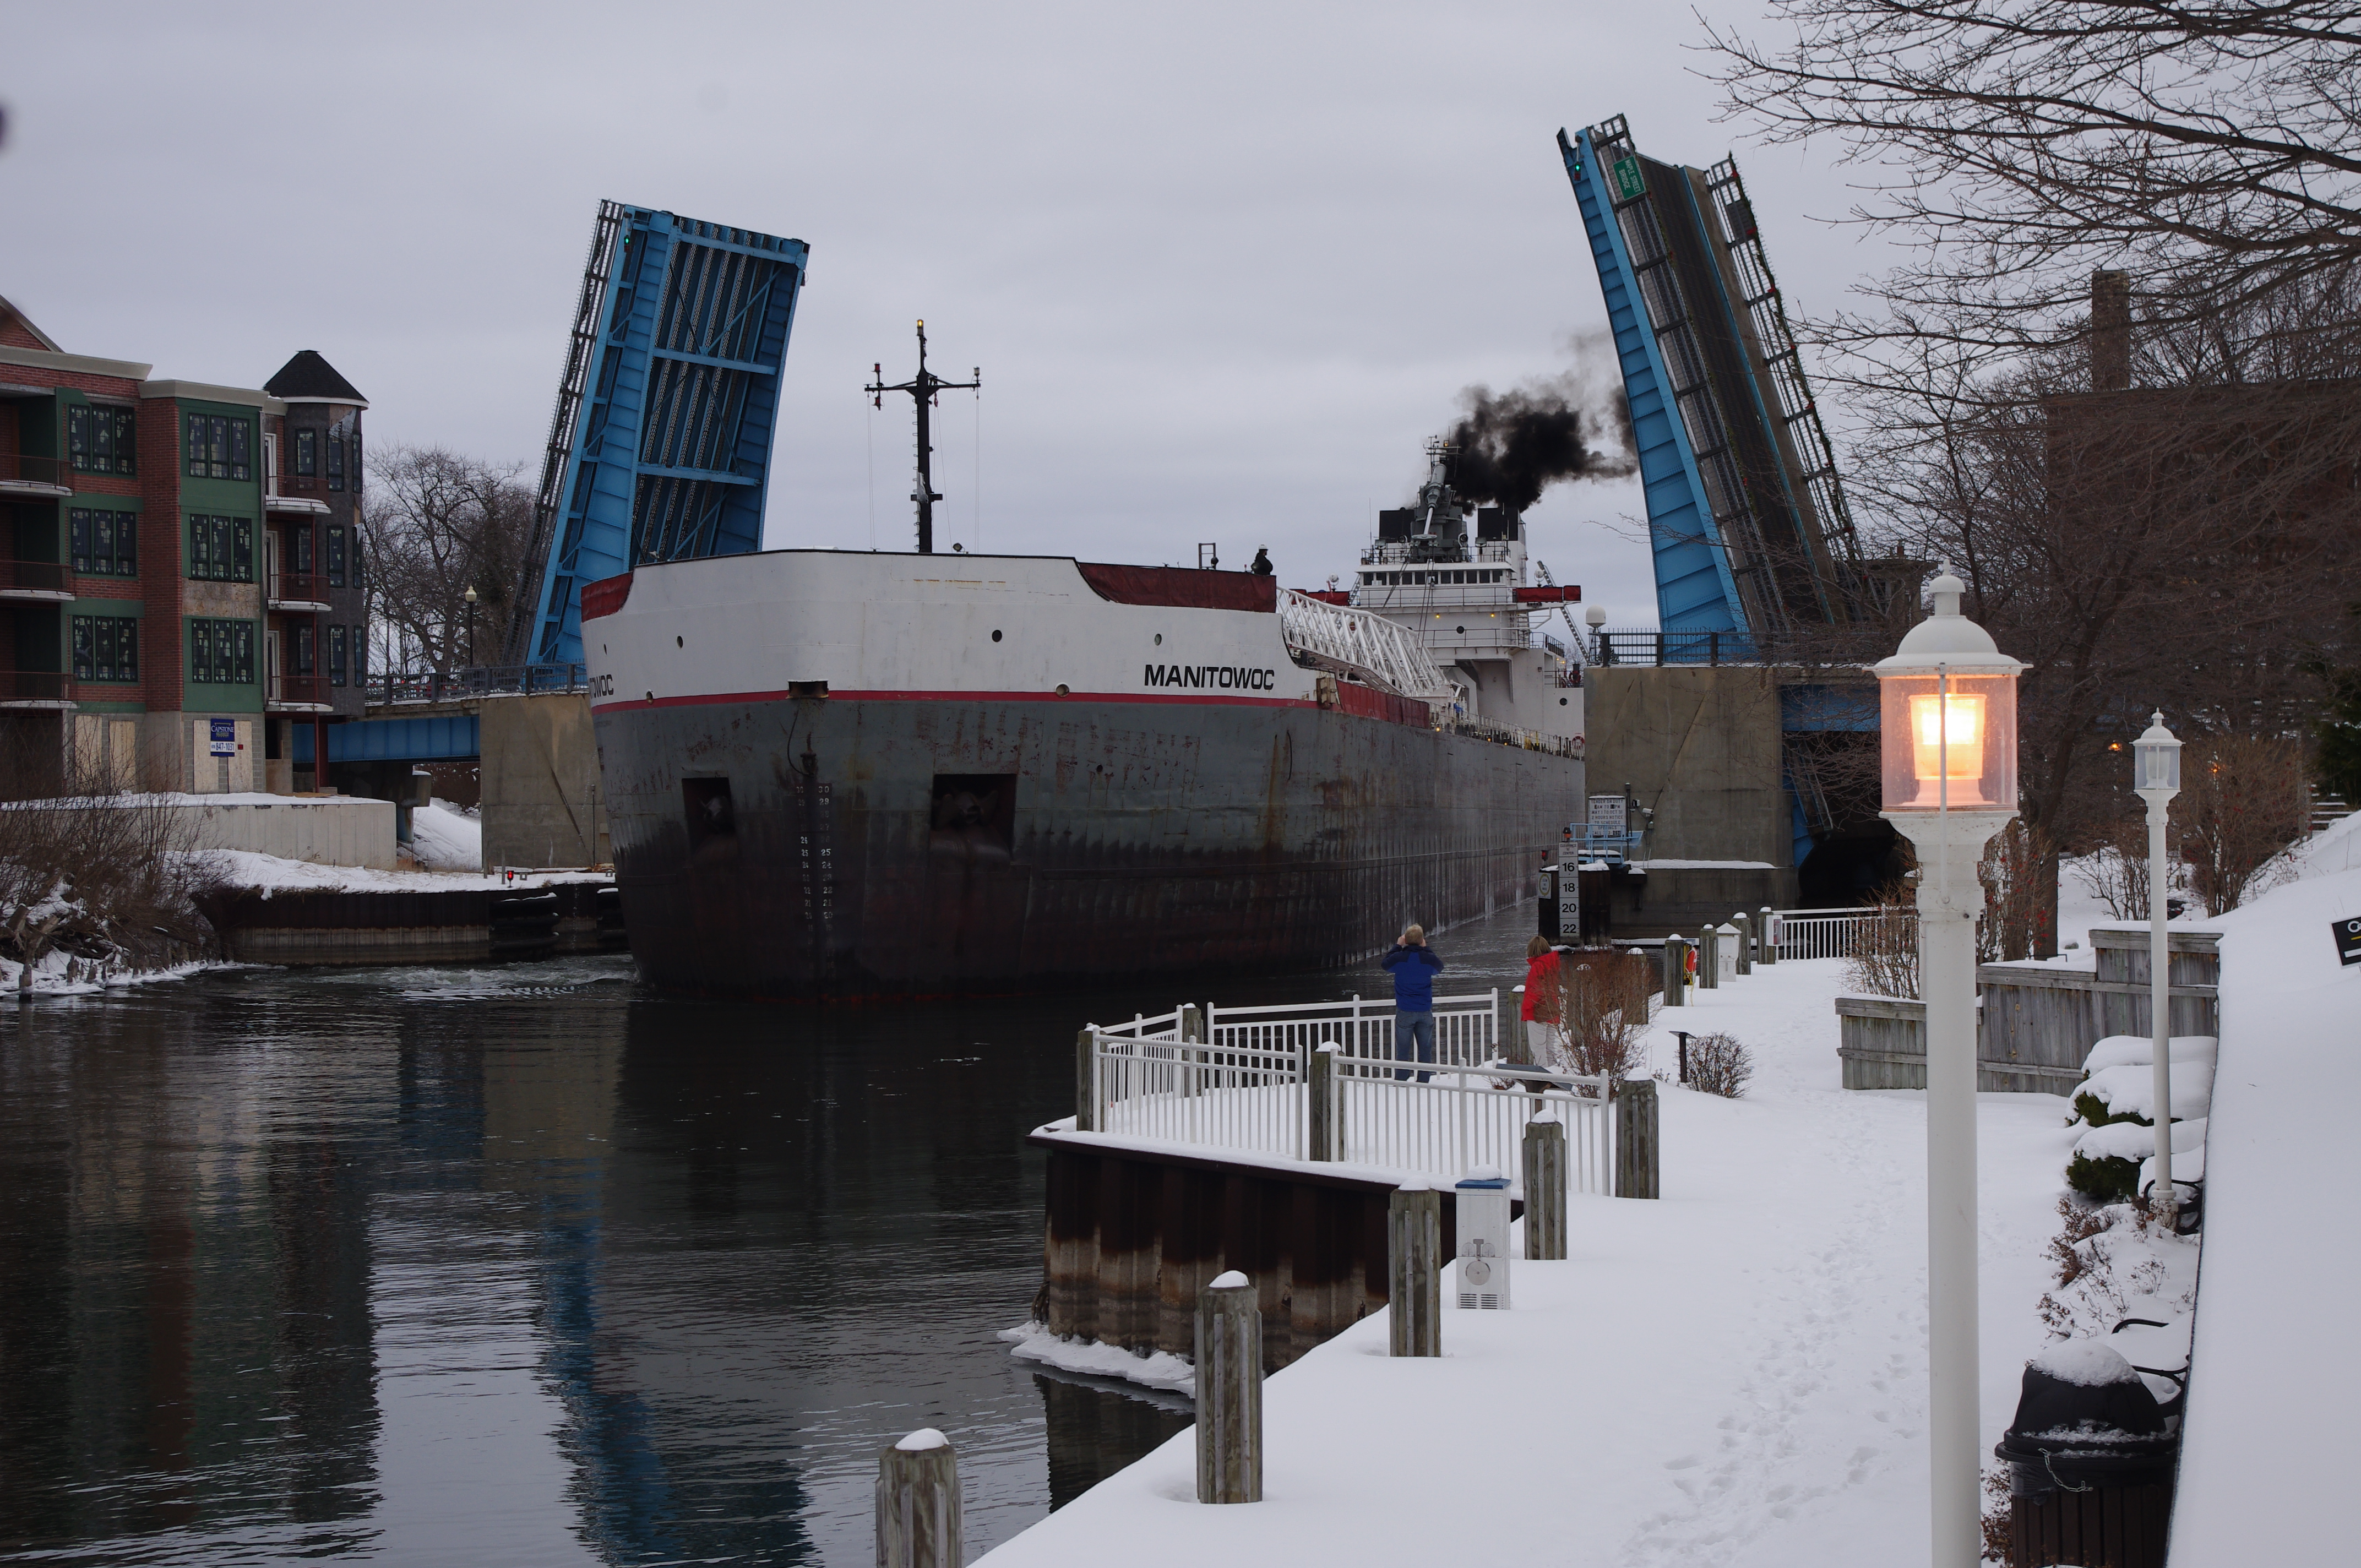 Snow is seen on the riverwalk in the foreground of this photo of Great Lakes Freighter Manitowoc as it goes through the Maple Street Bridge in winter